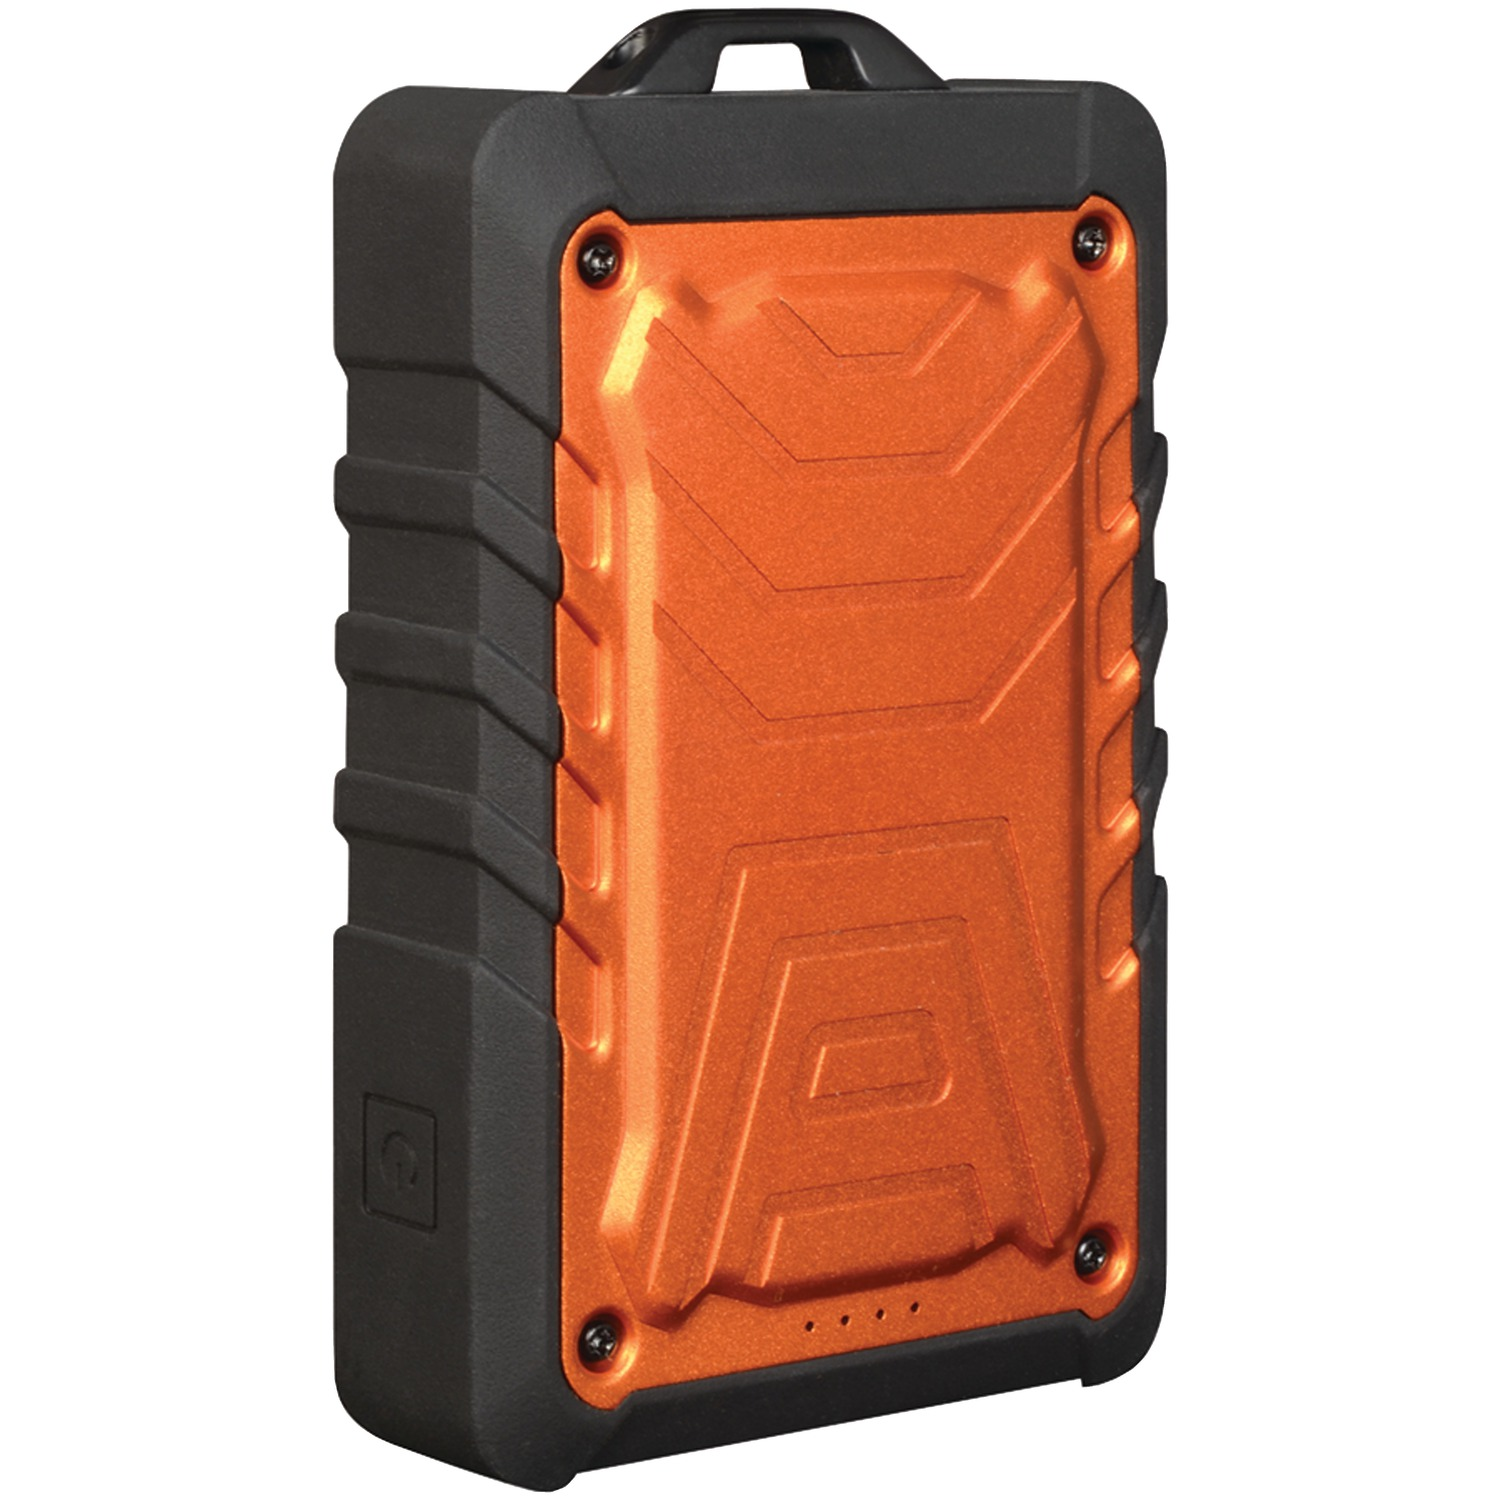 ToughTested TT-PBW85 8,000mAh Rugged Power Bank with Dual USB Ports